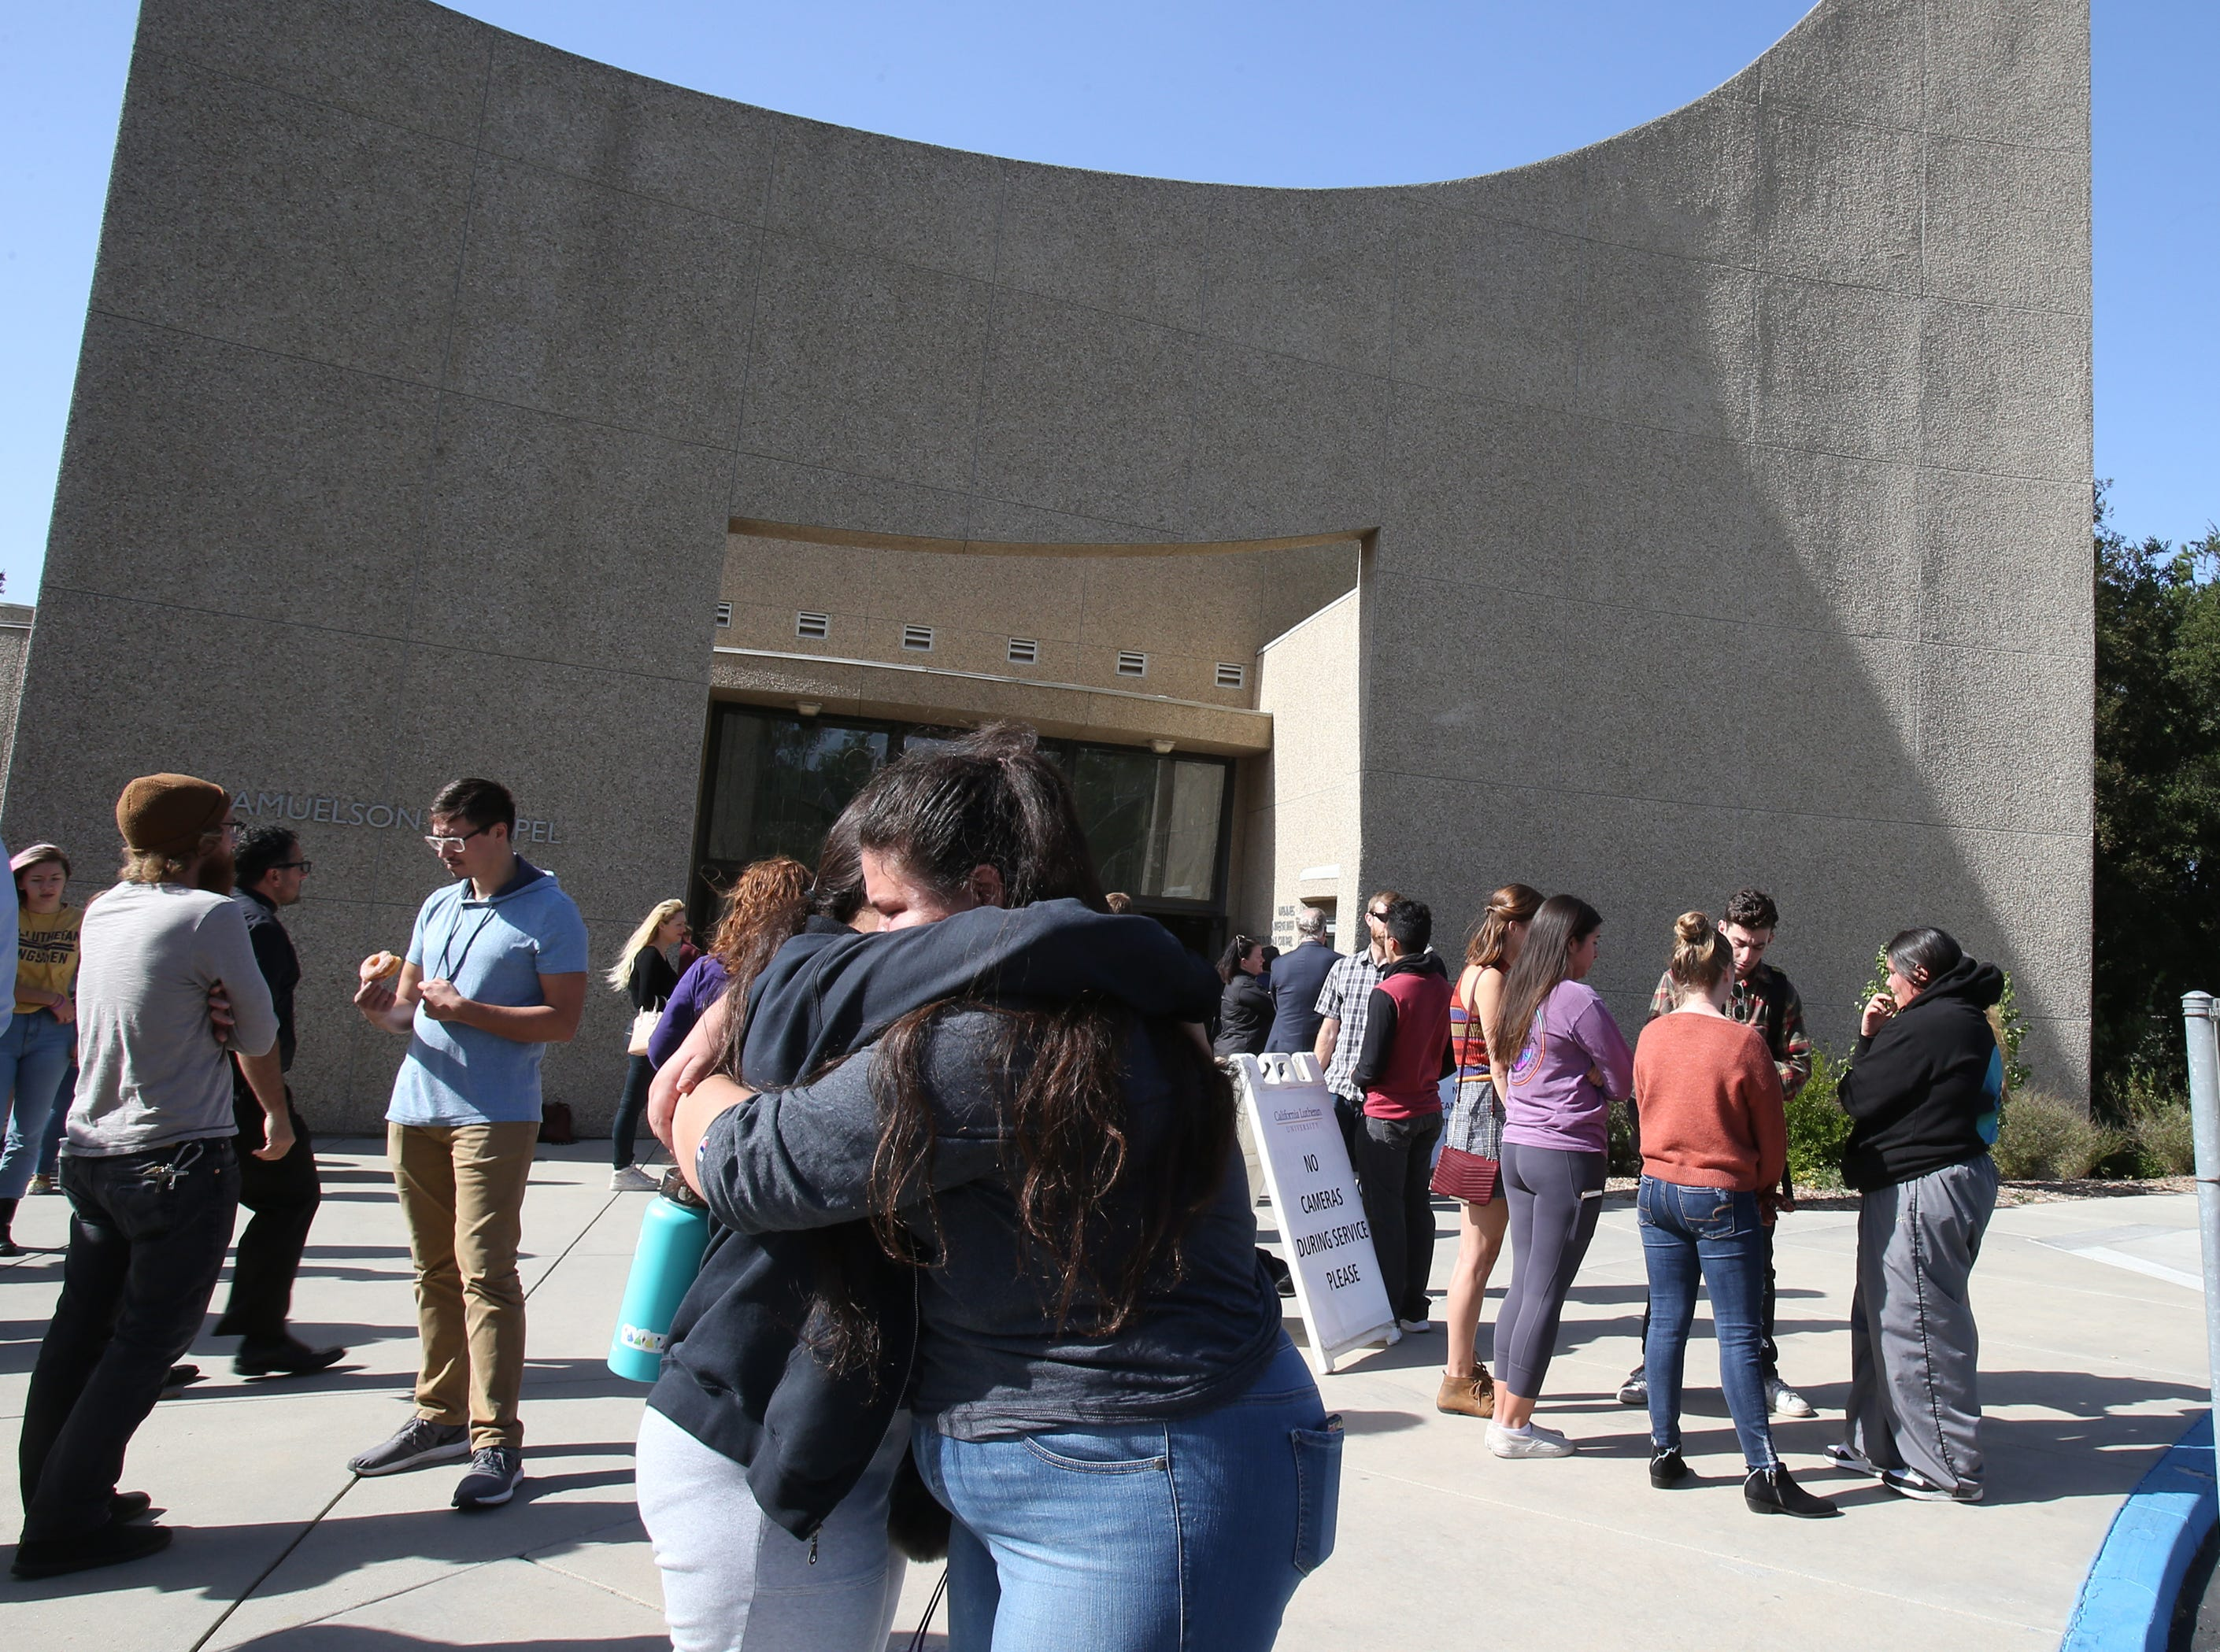 Cal Lutheran students Emmalee Villafana and Bianca Akbiyik hug each other after the service Thursday for the victims of the Borderline Bar Borderline Bar & Grill shooting.